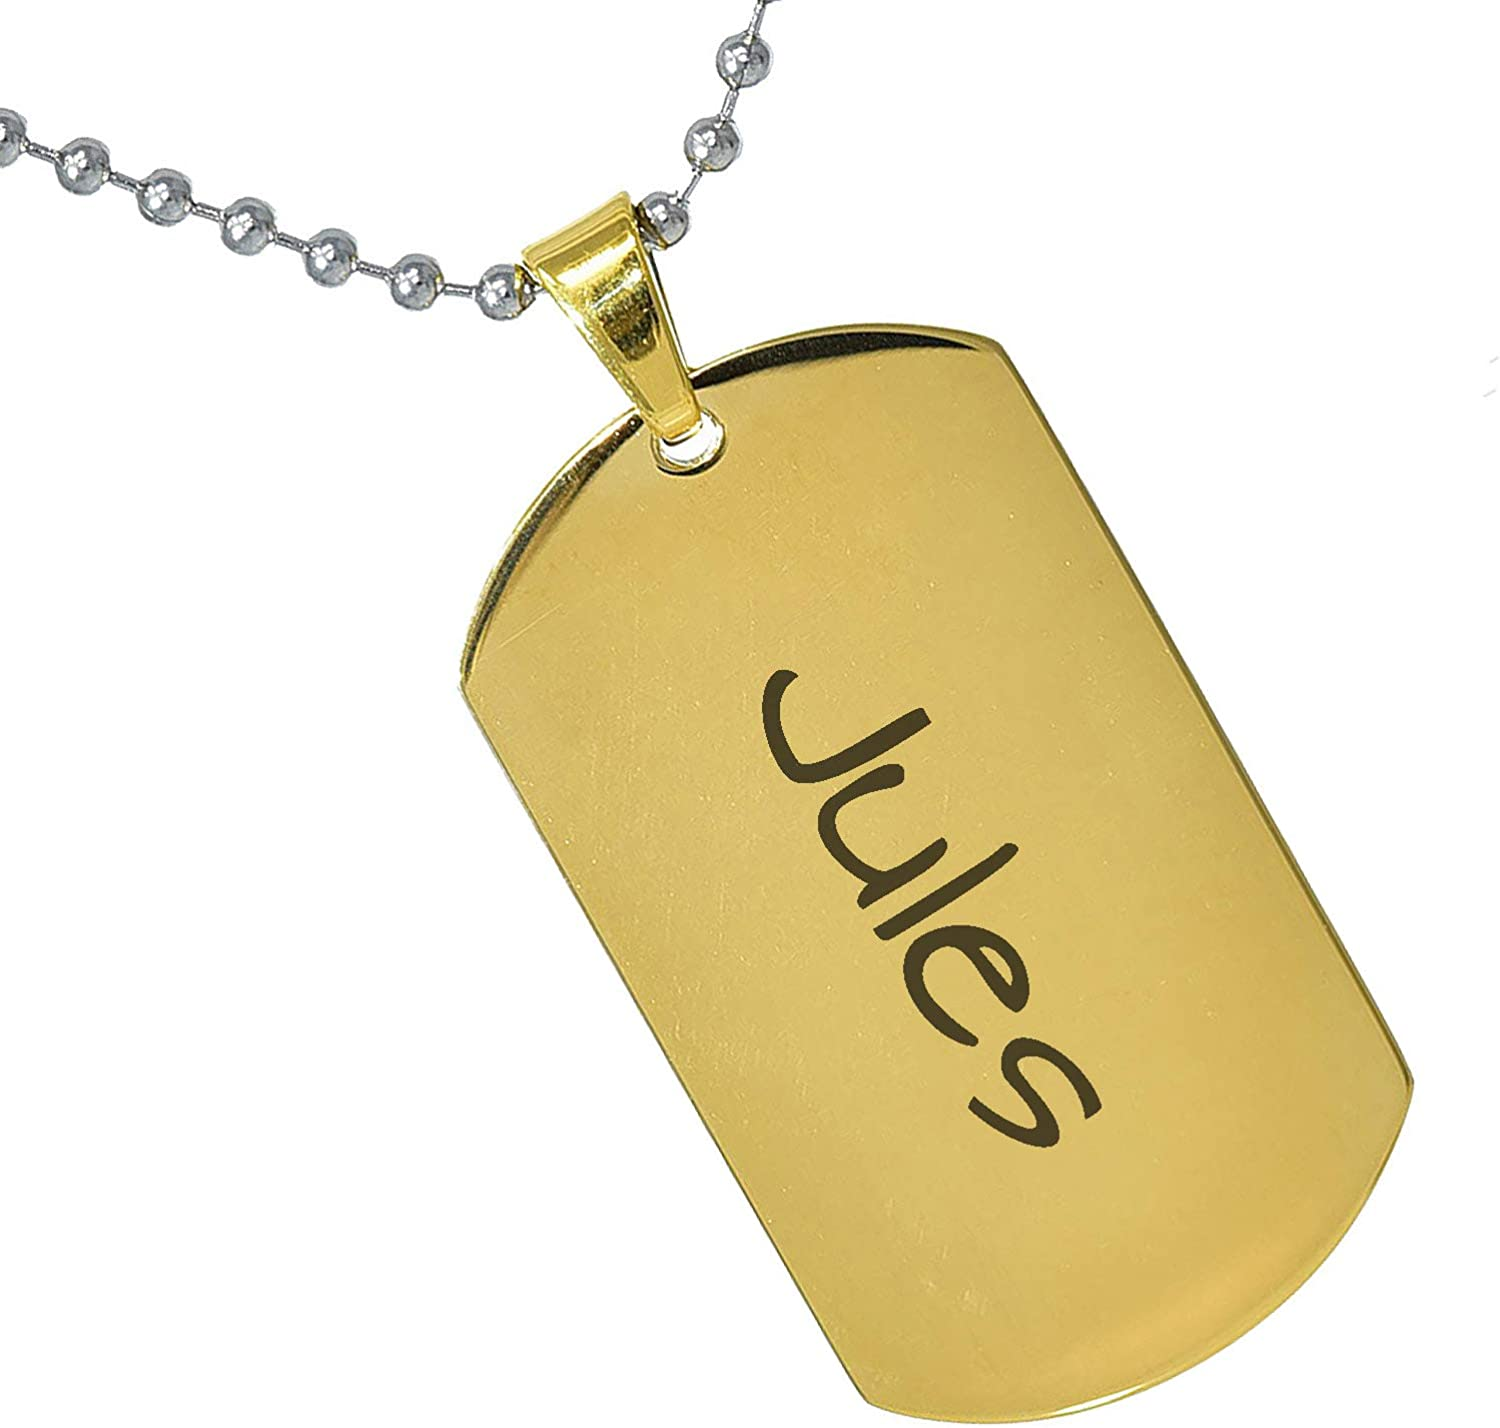 Stainless Steel Silver Gold Black Rose Gold Color Baby Name Jules Engraved Personalized Gifts For Son Daughter Boyfriend Girlfriend Initial Customizable Pendant Necklace Dog Tags 24 Ball Chain